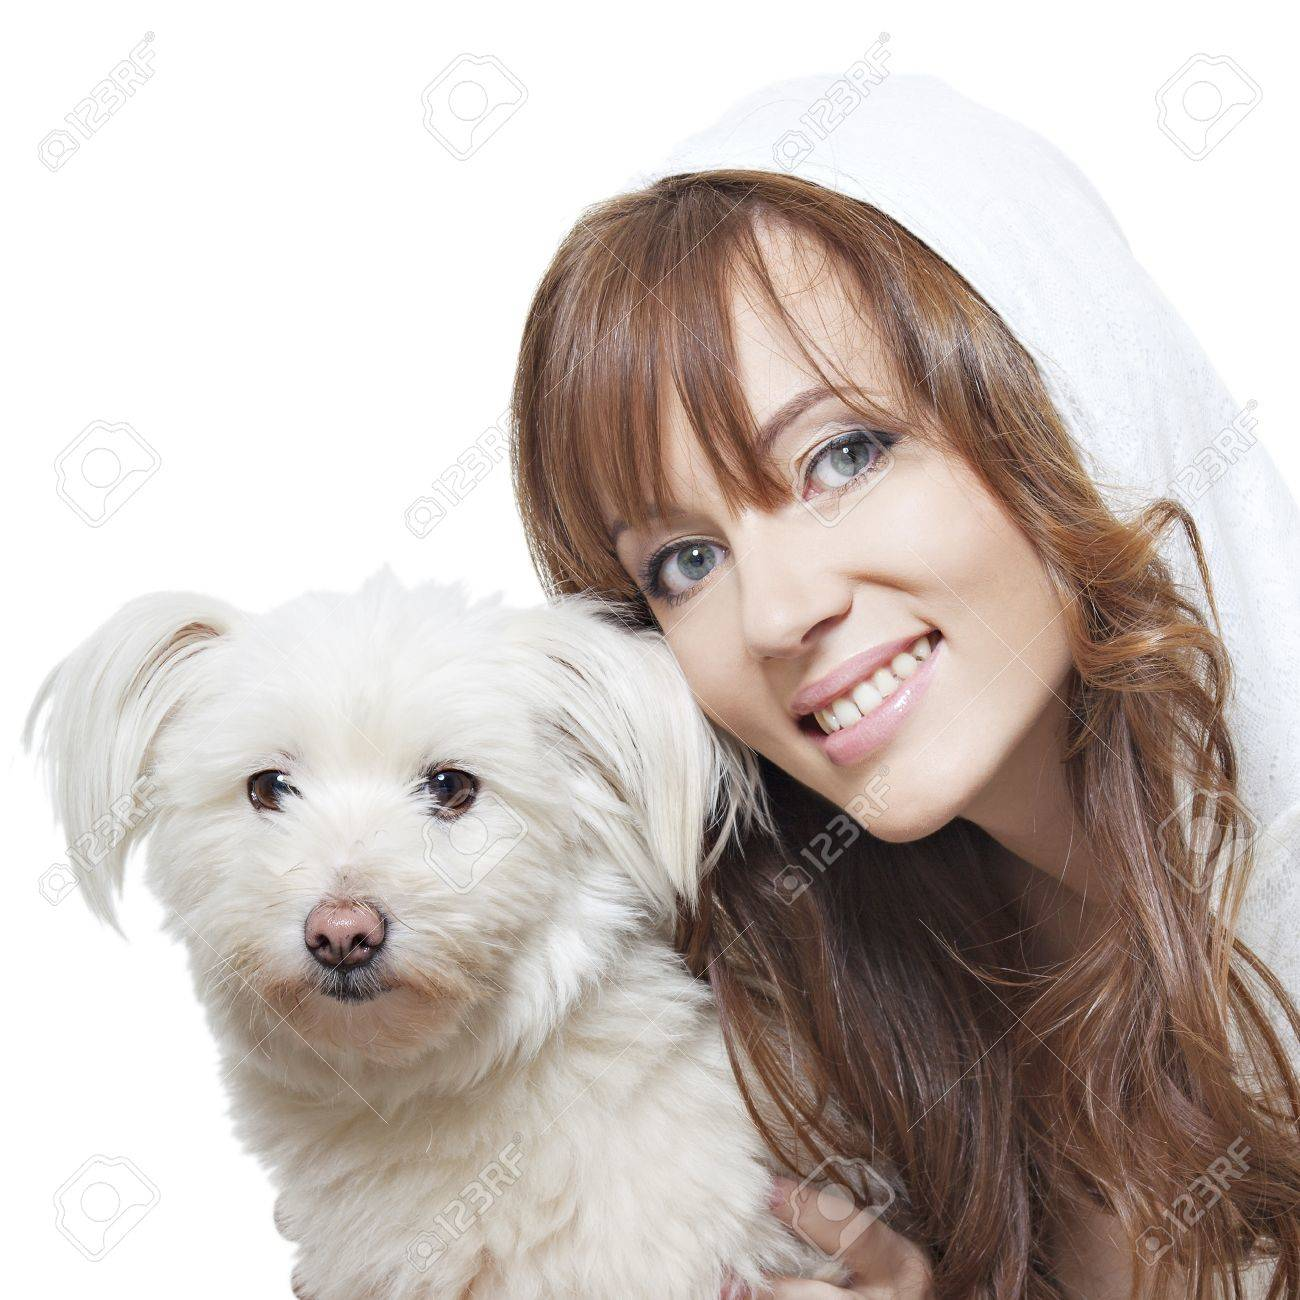 beautiful smiling girl with perfect skin with a fluffy white dog on a white background Stock Photo - 10909868